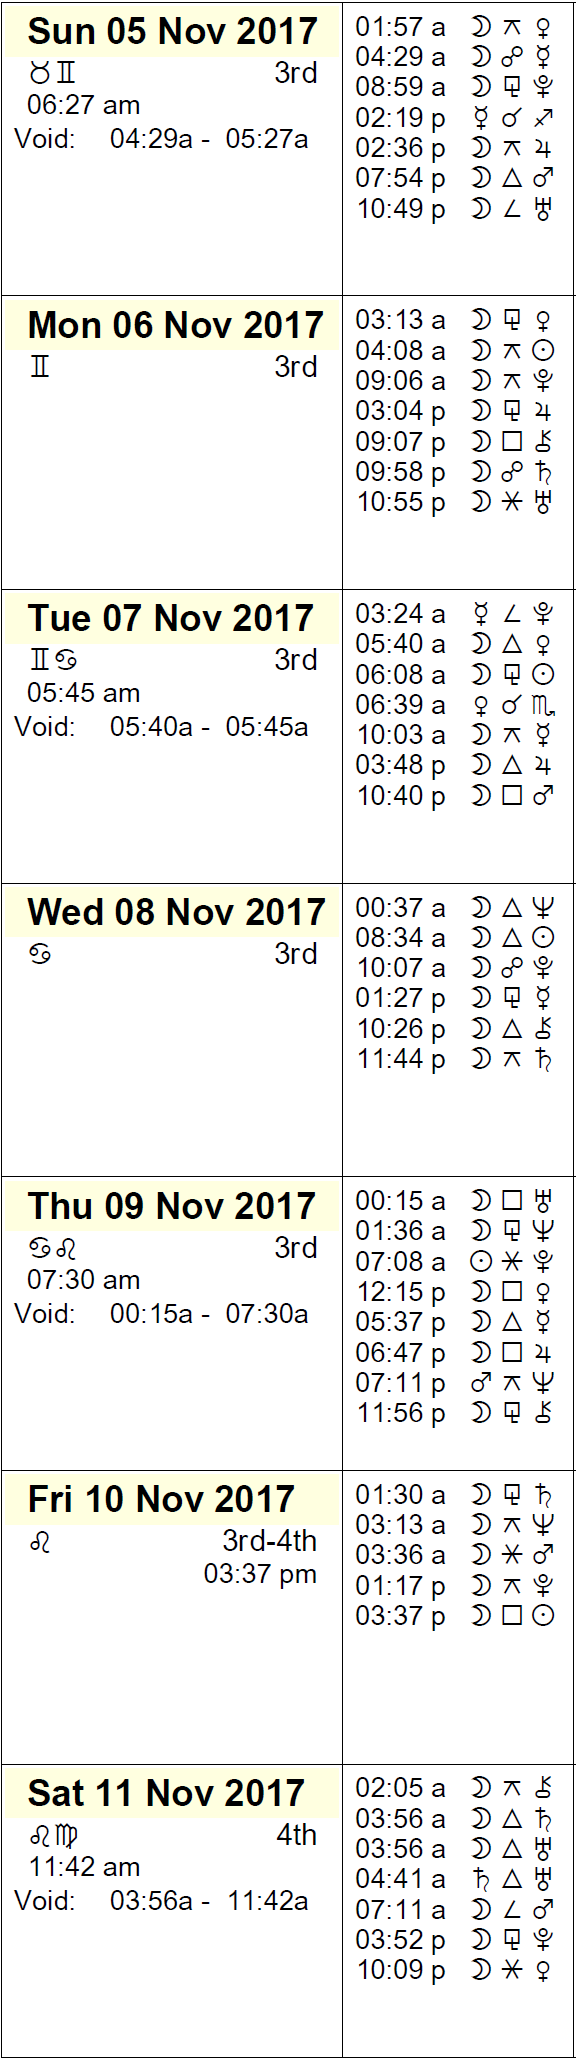 This Week in Astrology Calendar: November 5th to 11th, 2017